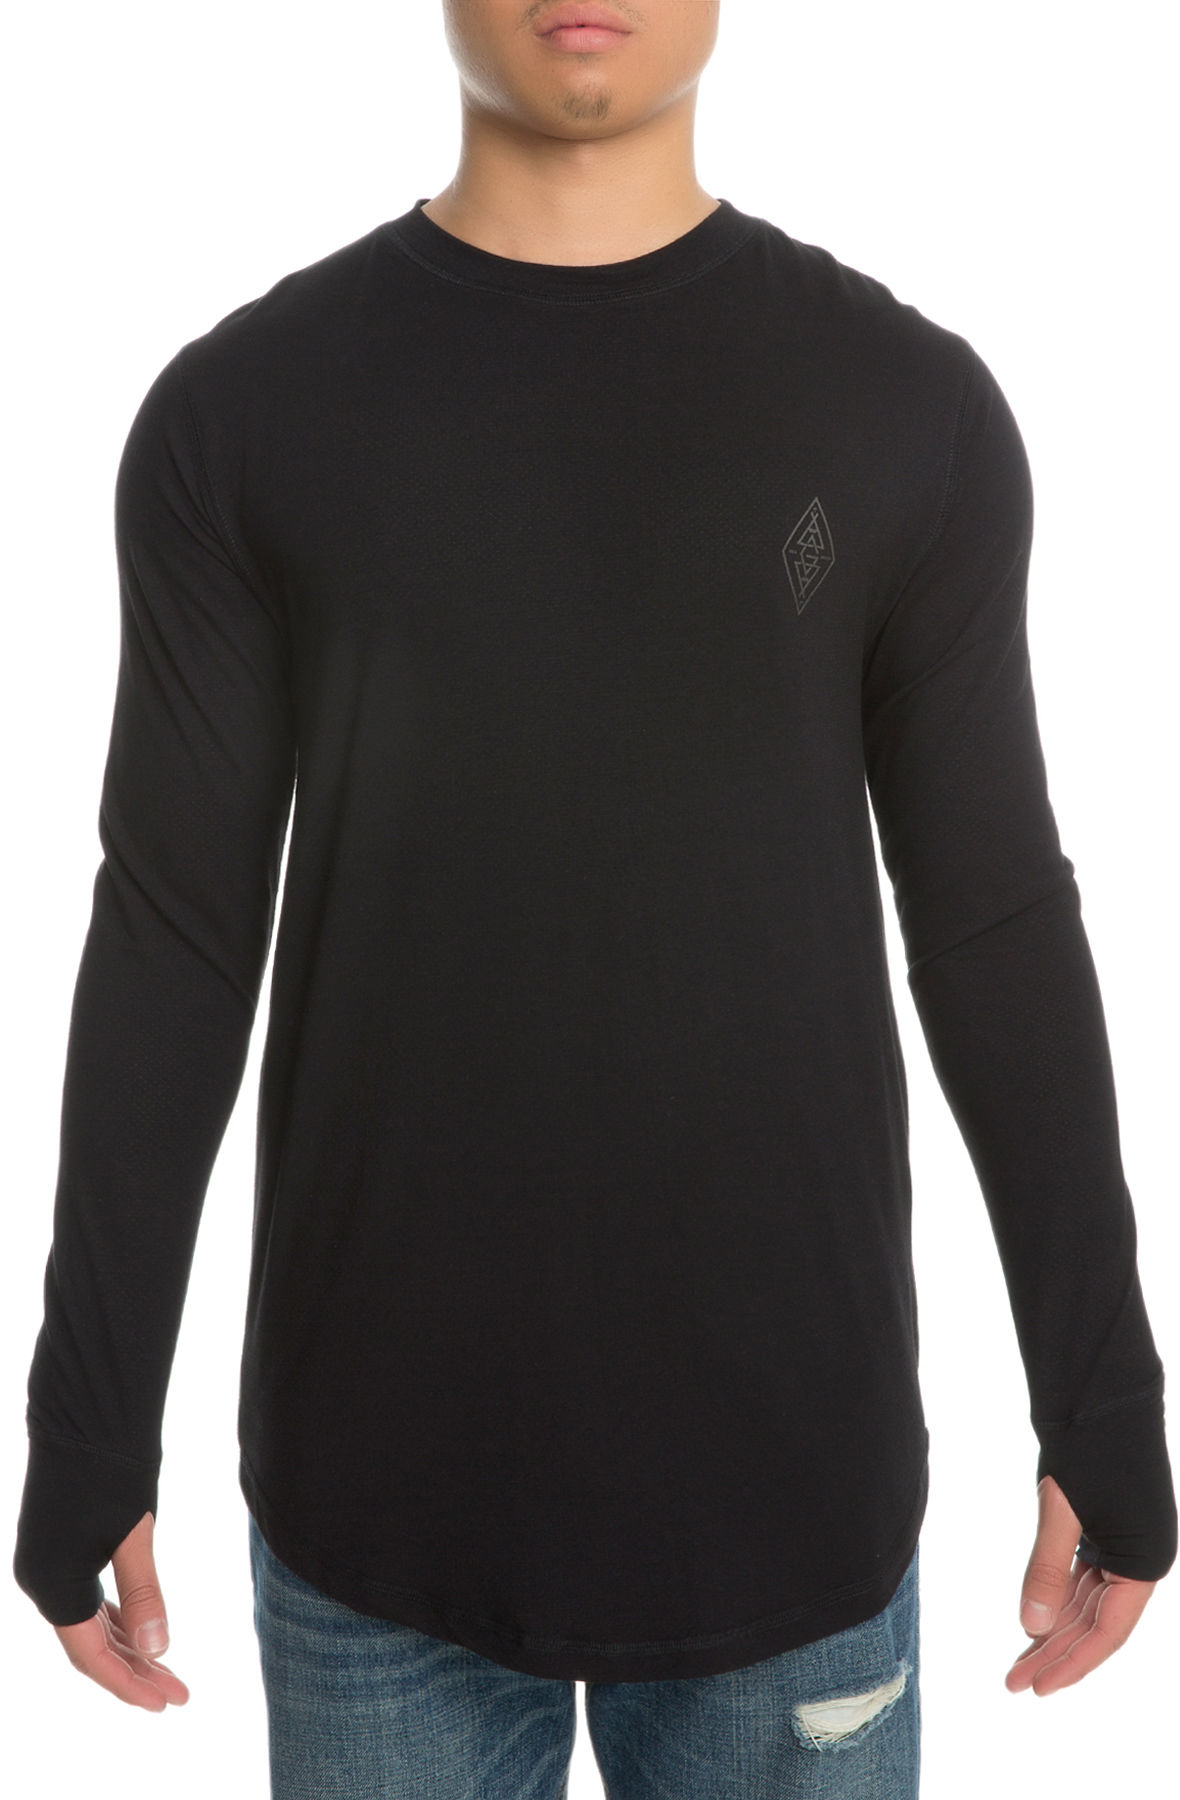 Image of The Basin Long Sleeve in Black